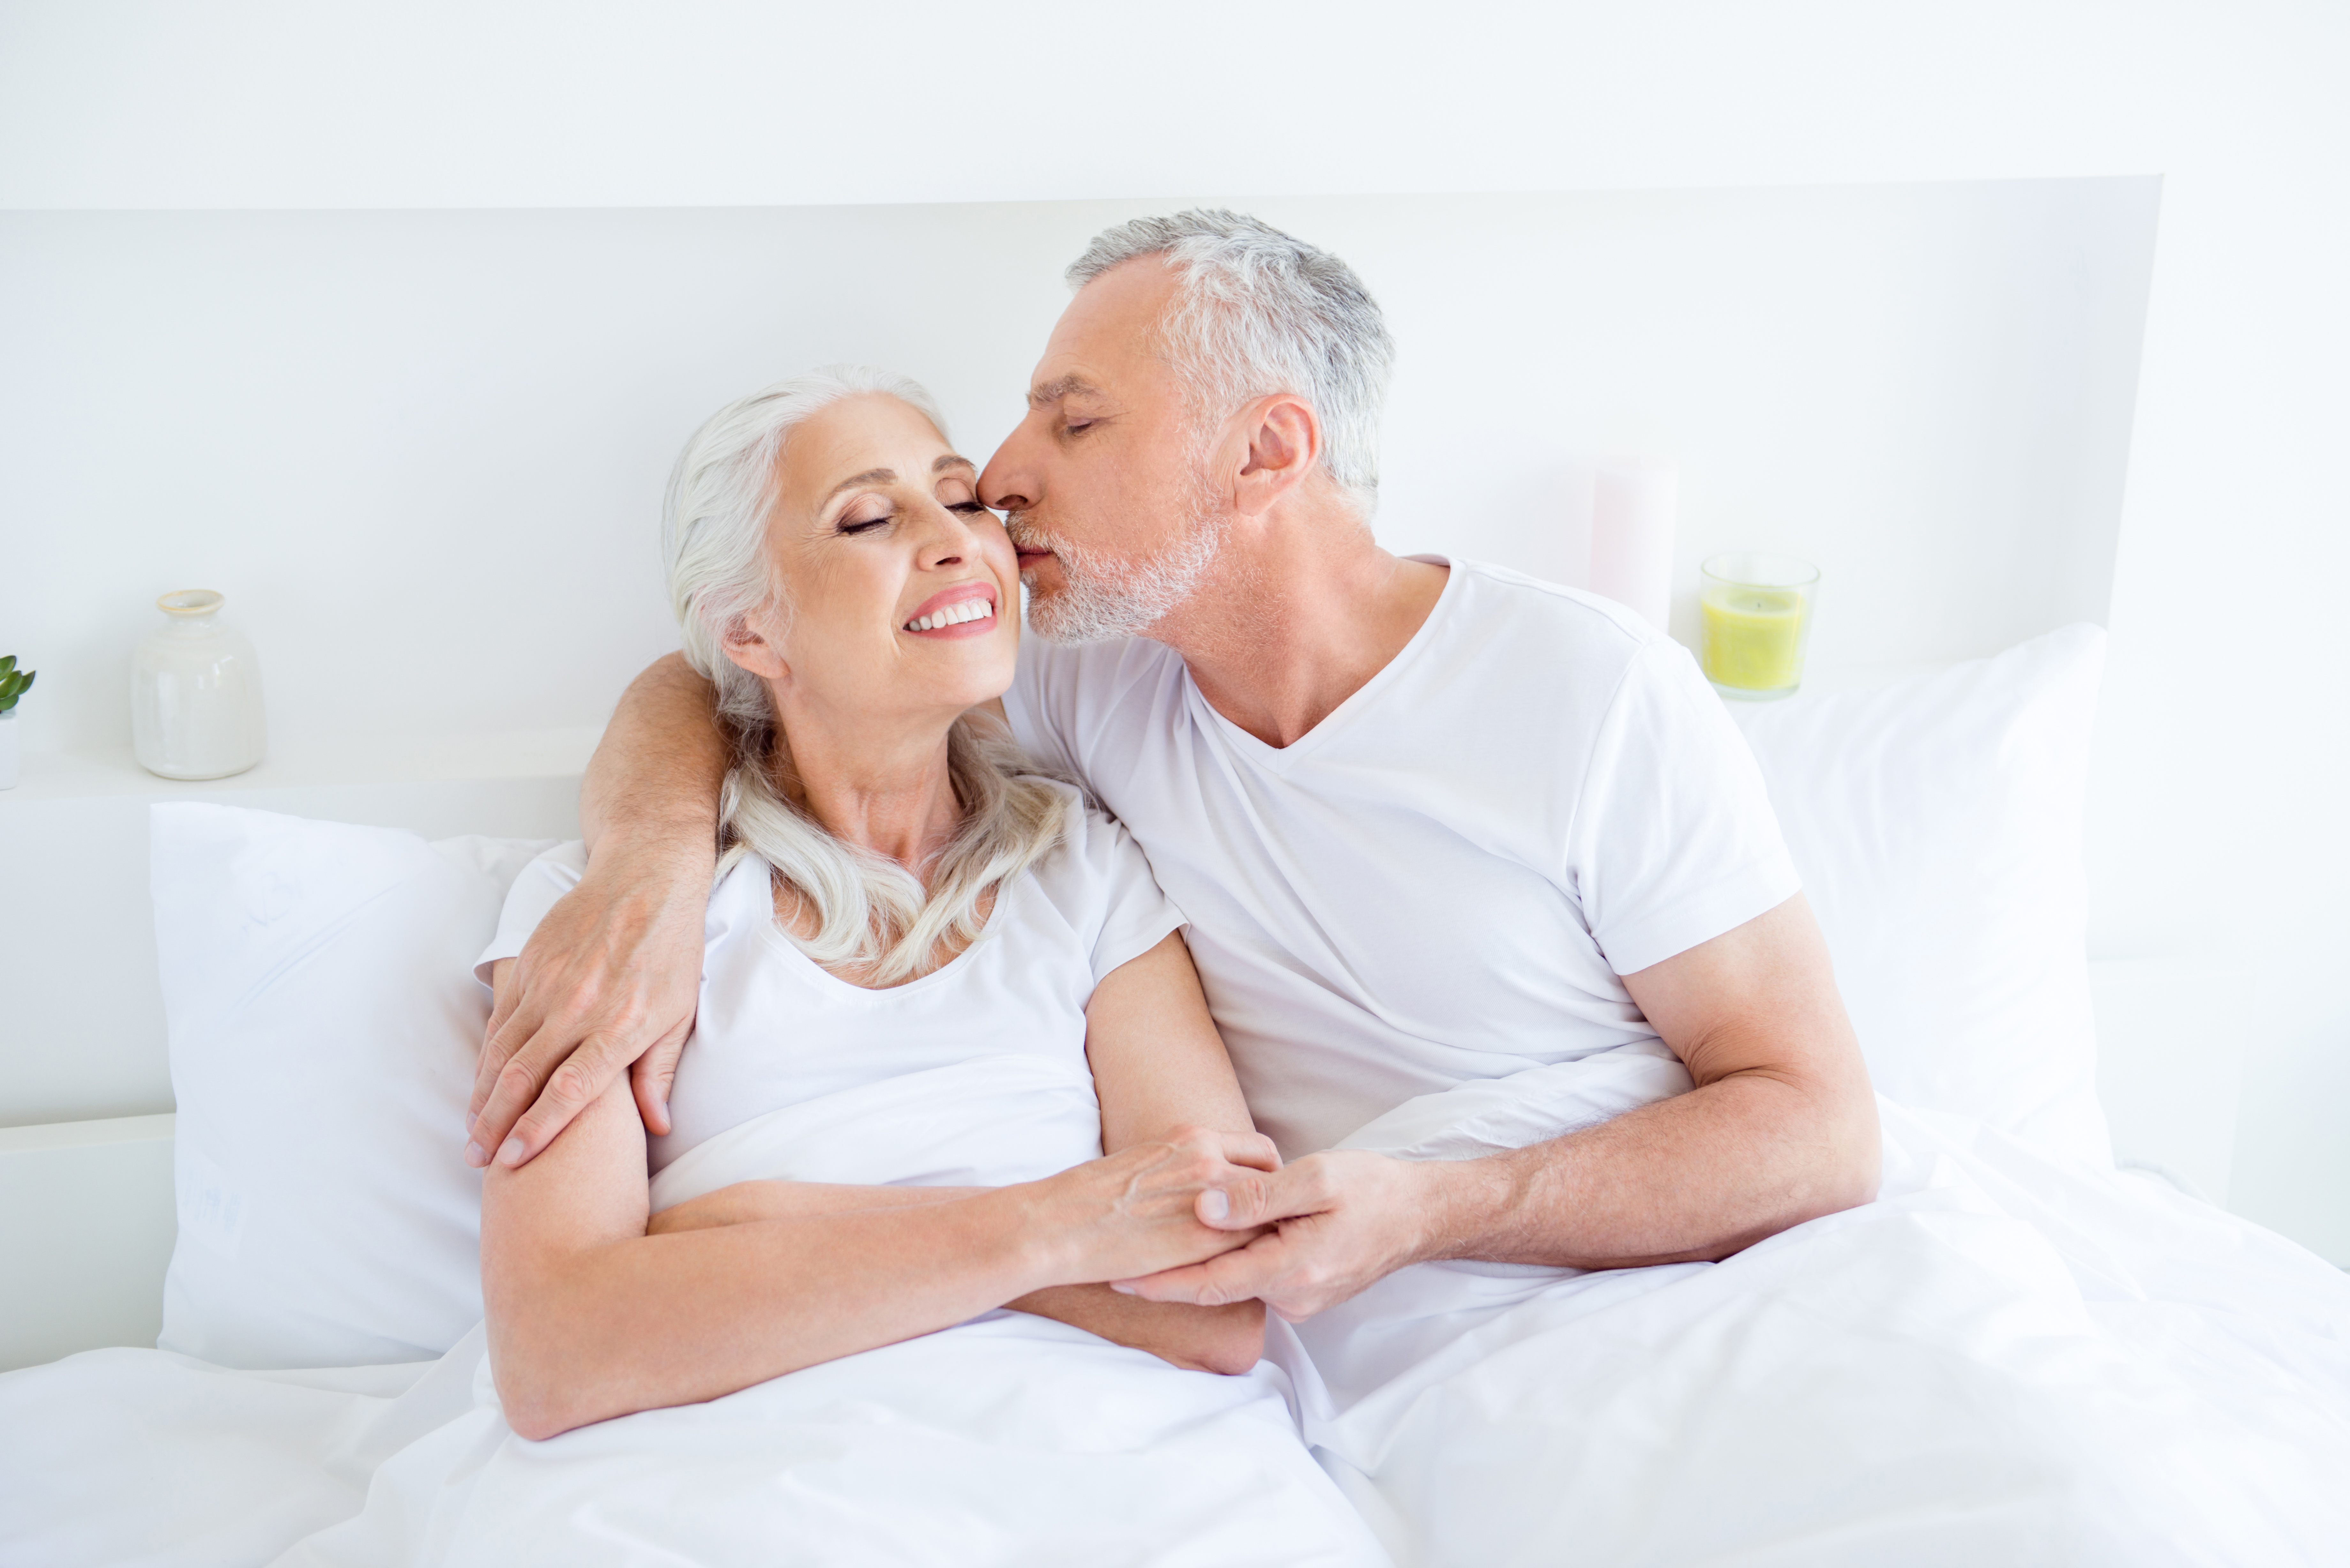 GAINSWave Therapy & erectile dysfunction treatment